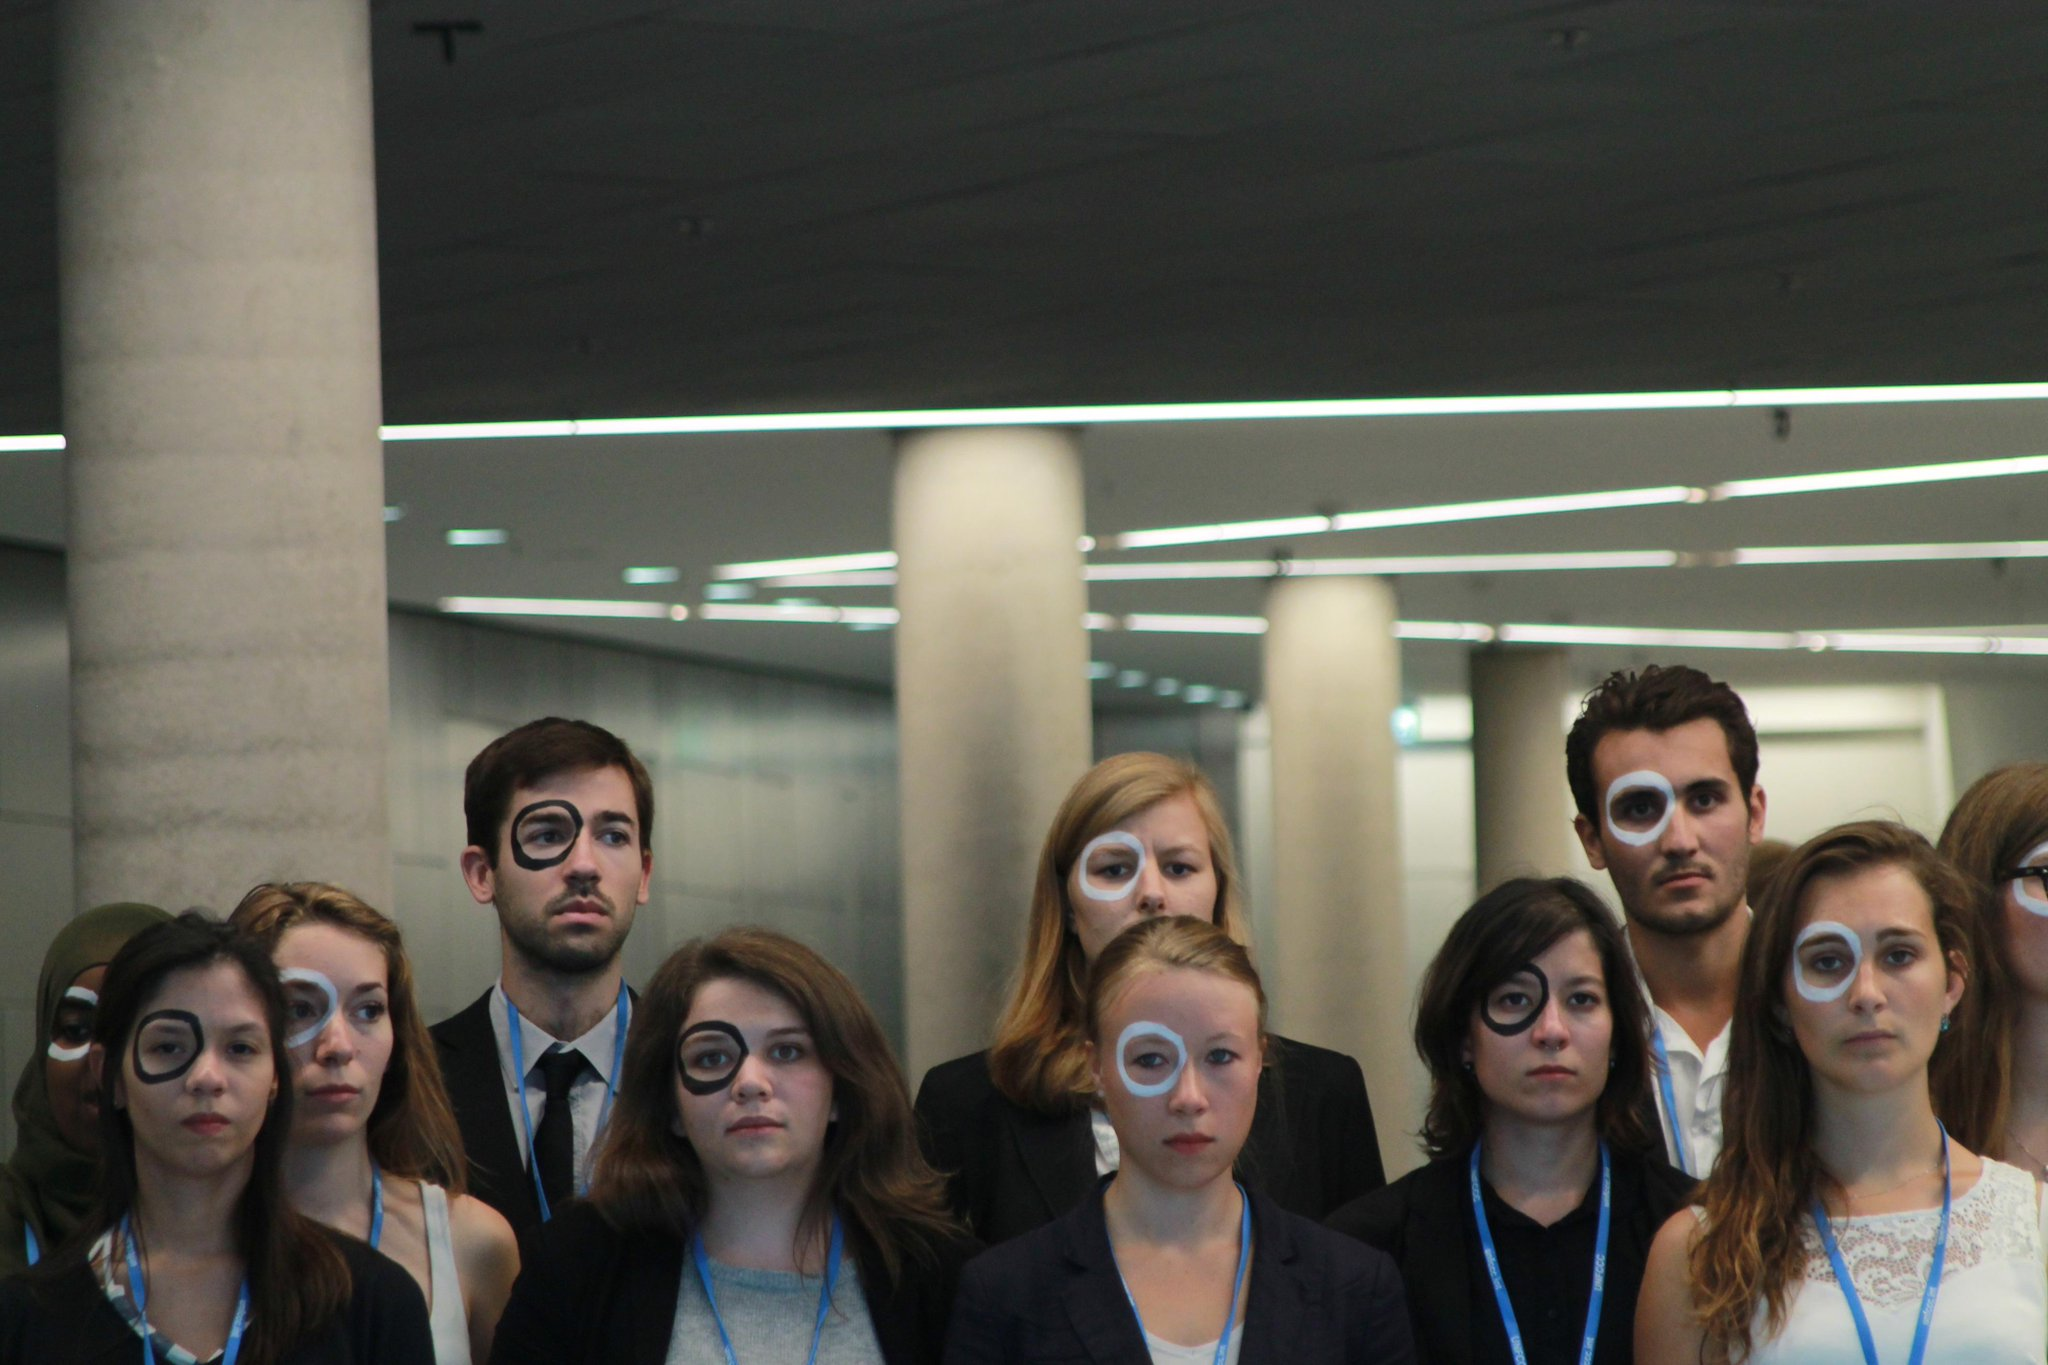 RT @fannycalder: Beautiful protest by youth at Bonn #climate negotiations #ADP2 #ZeroBy2050 #TheFutureIsRising http://t.co/zrnzkF6IOu http:…